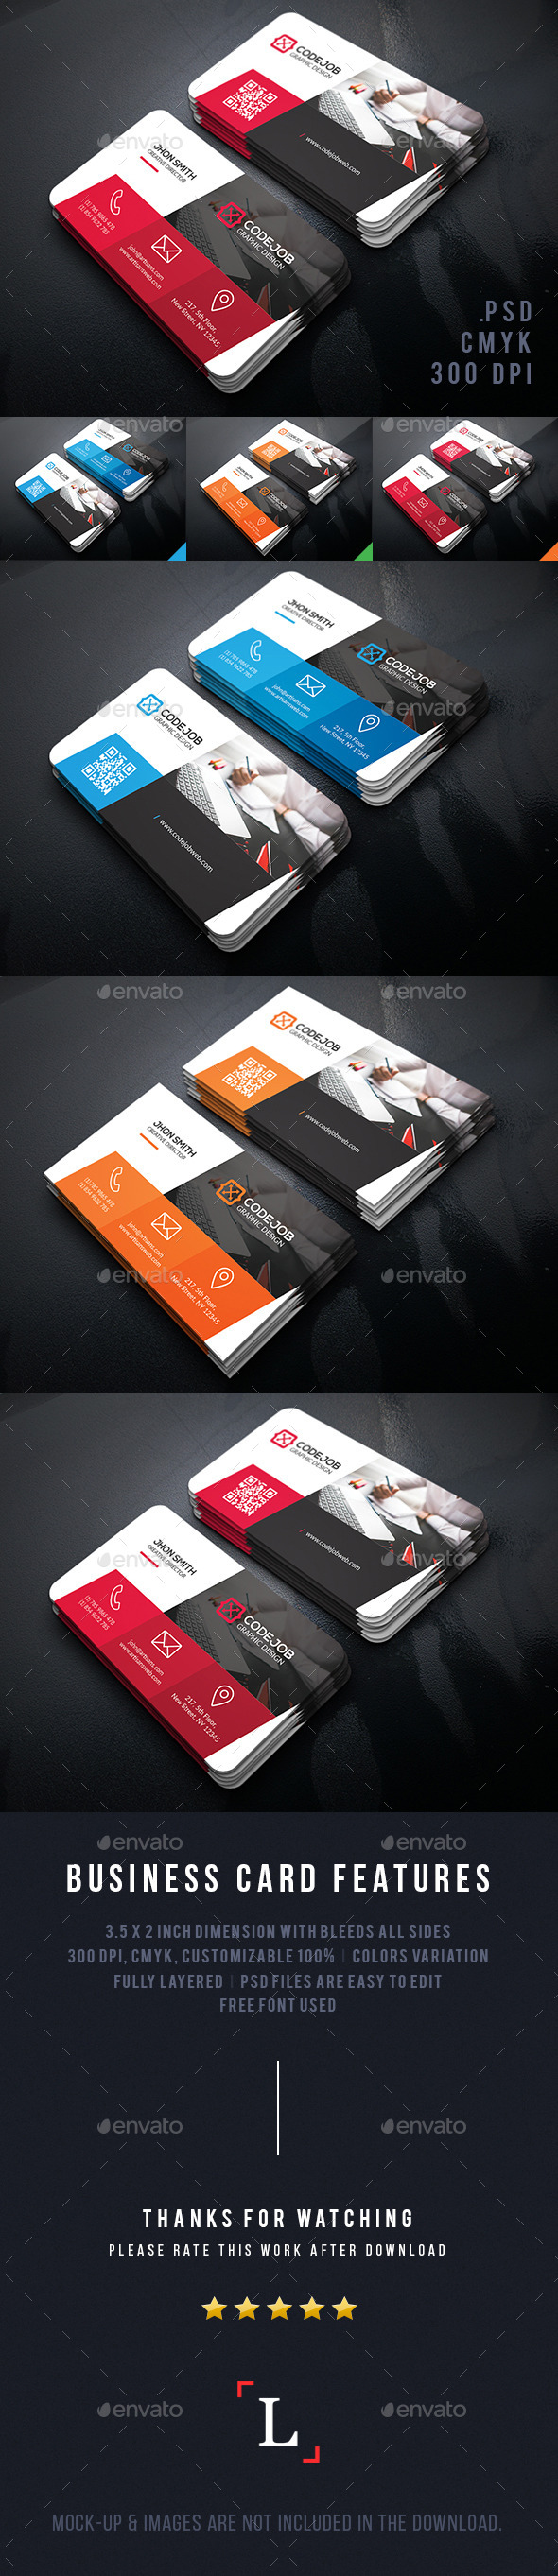 Codejob Corporate Business Cards - Business Cards Print Templates